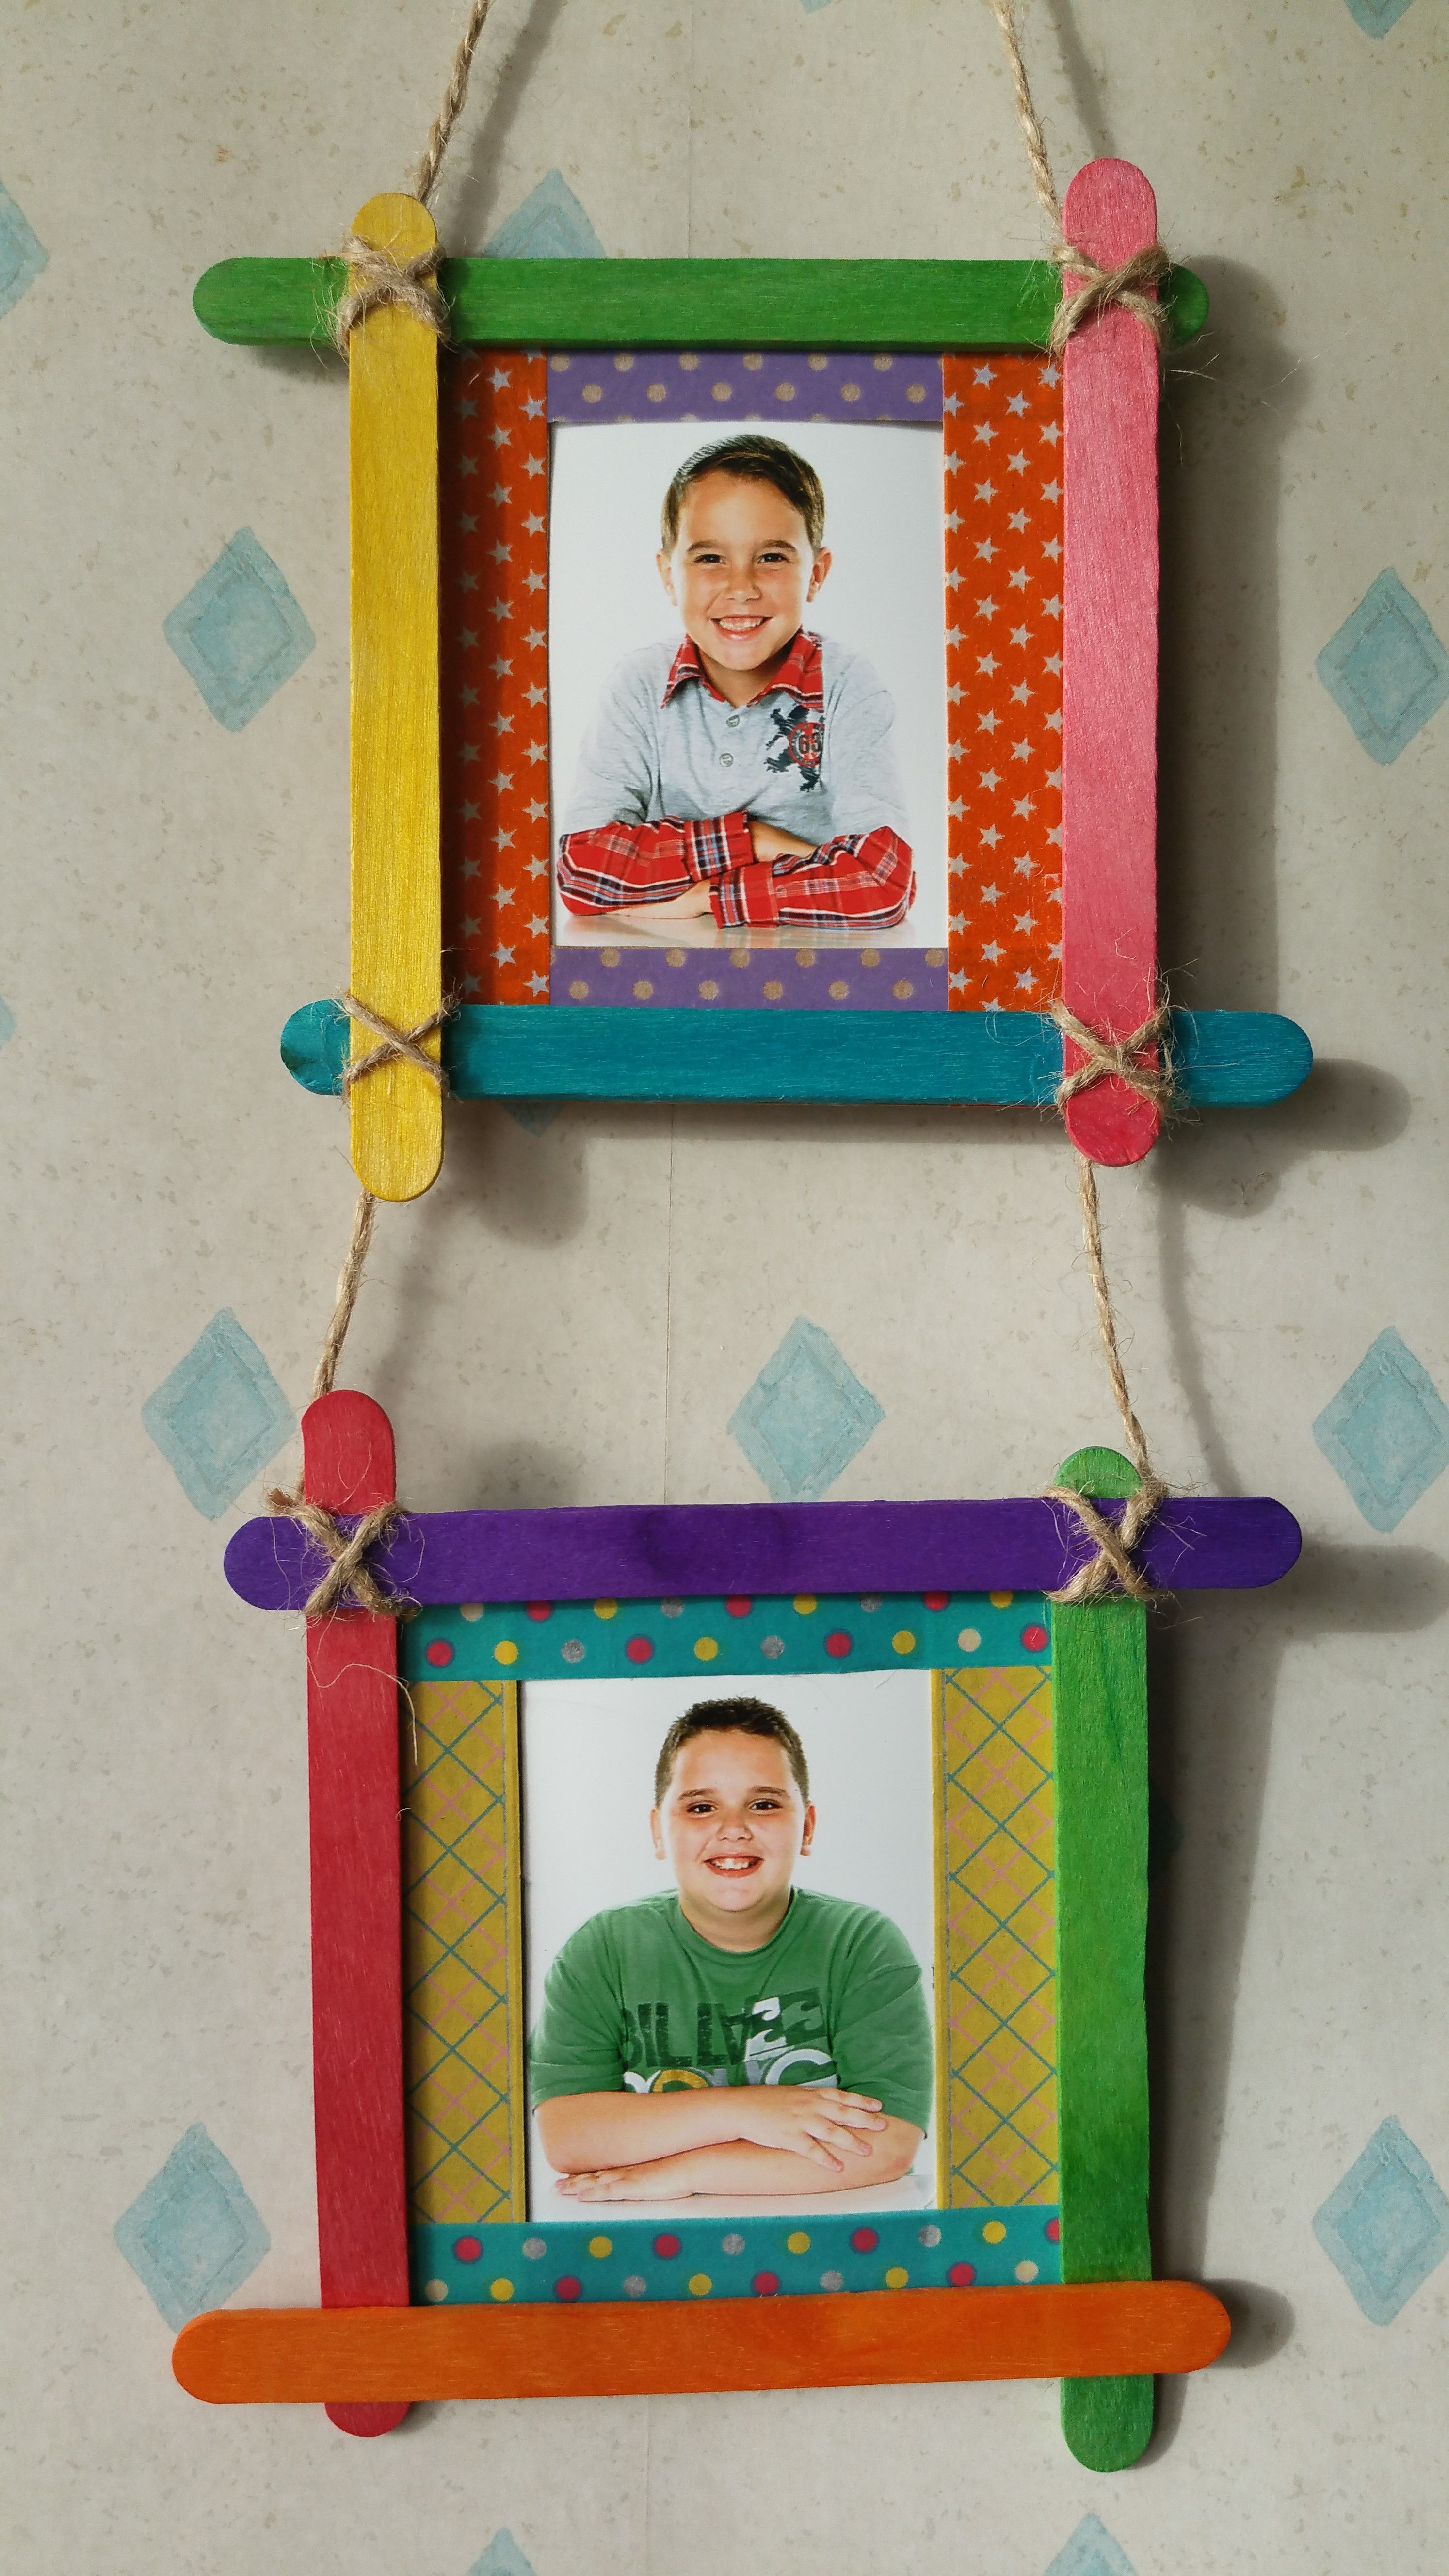 Colourful Frames From Ice Cream Popsicle Sticks Diy Gift Ideas